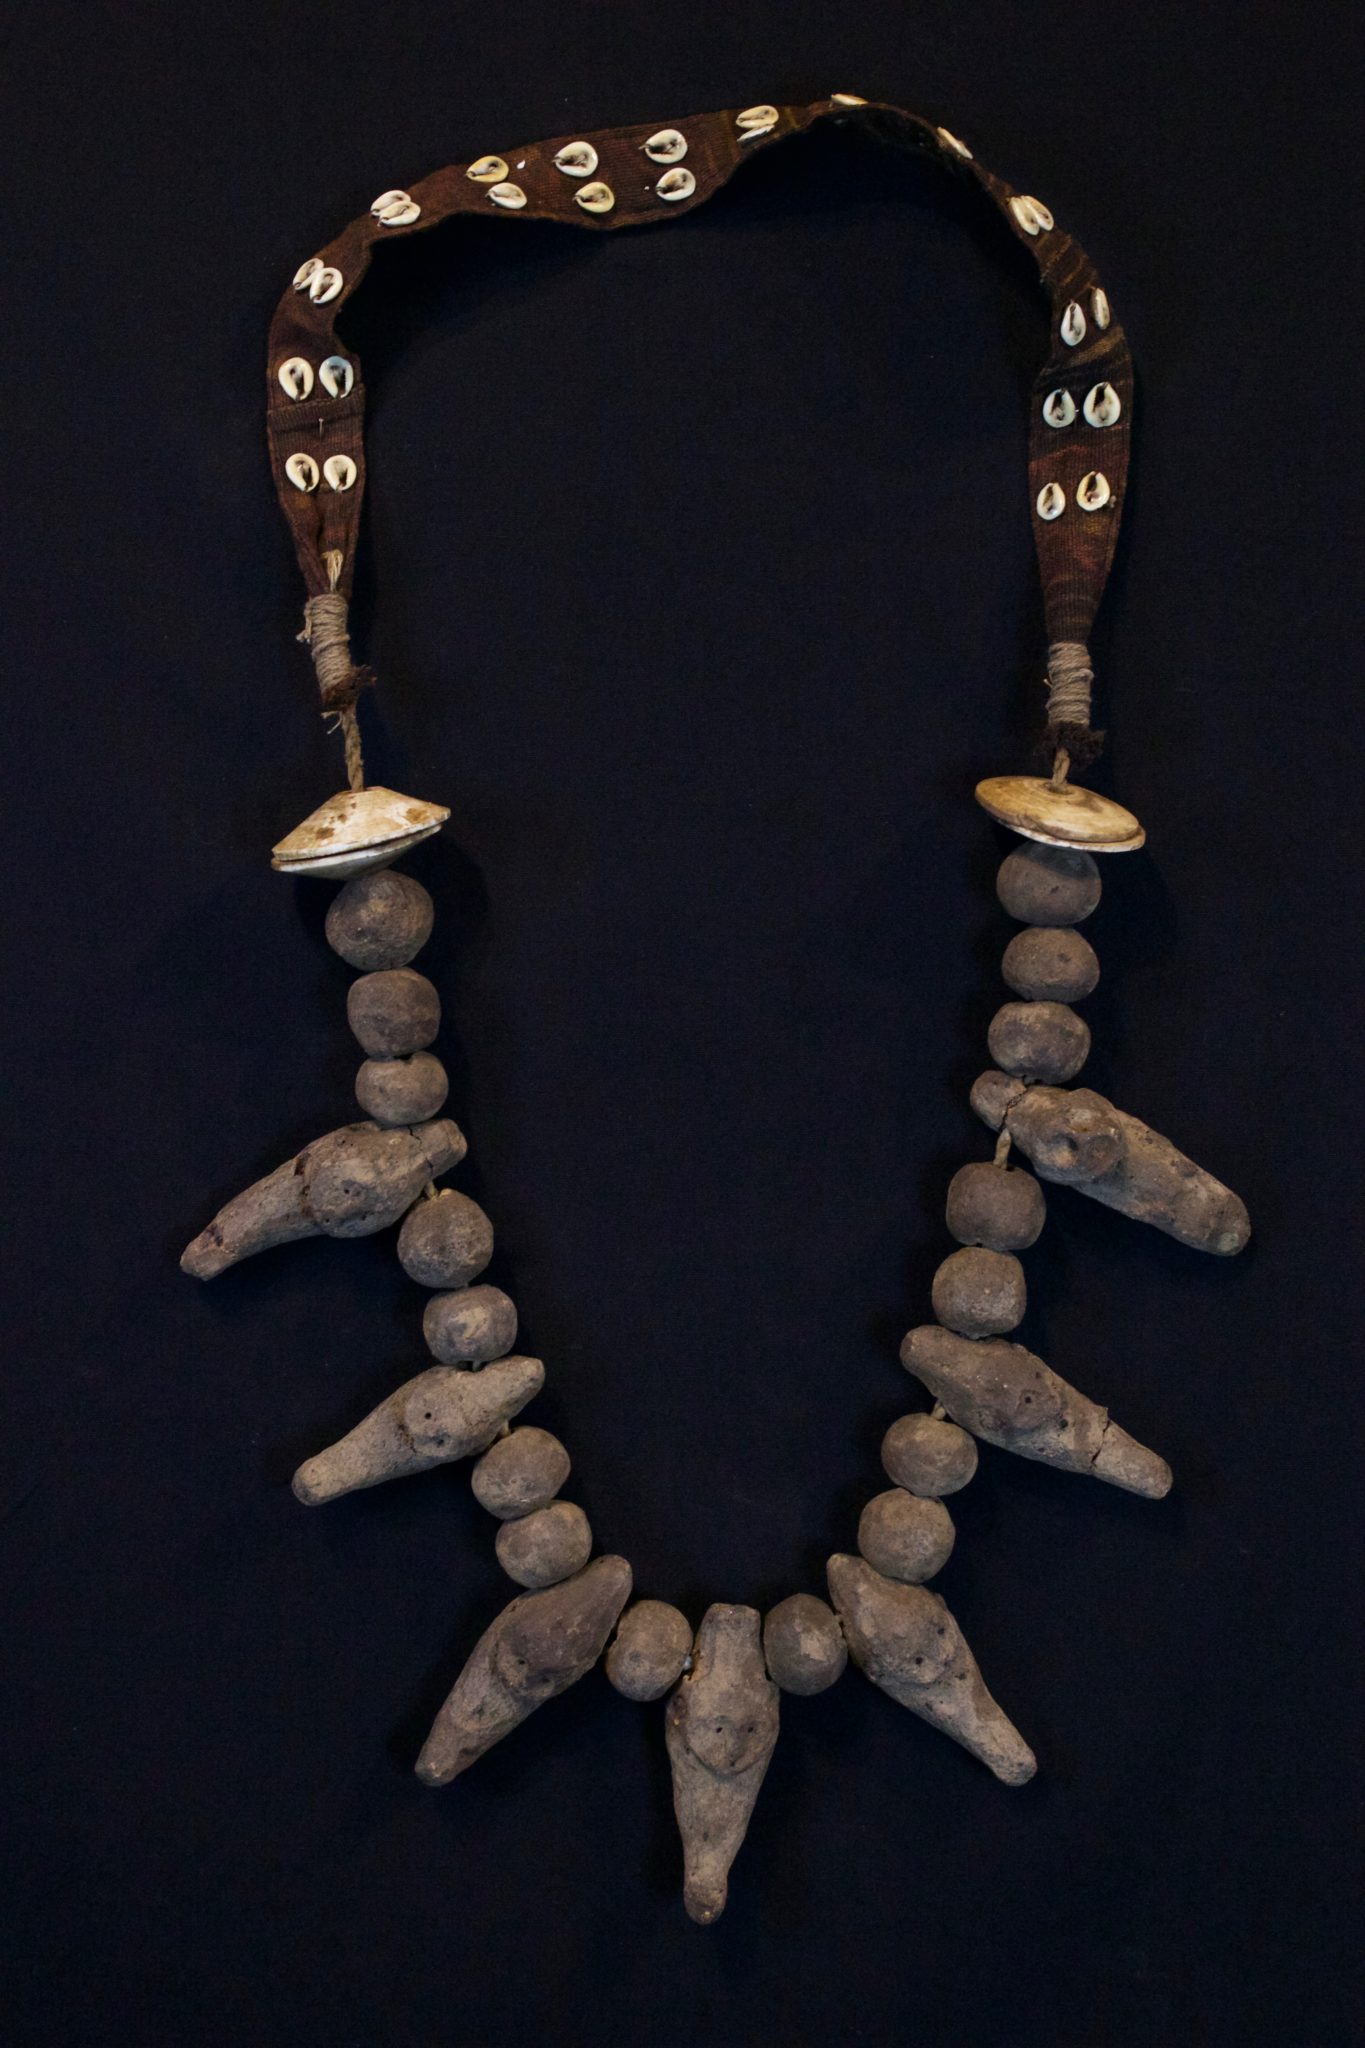 """Shaman Amulet Necklace, Timor Island, Lesser Sunda Islands, Indonesia, Early 20th c, Ceramic stone figures and beads, shell, cotton. Worn by the shaman for healing ceremonies. 21"""" x 11"""" x 1 ¾"""" $650."""